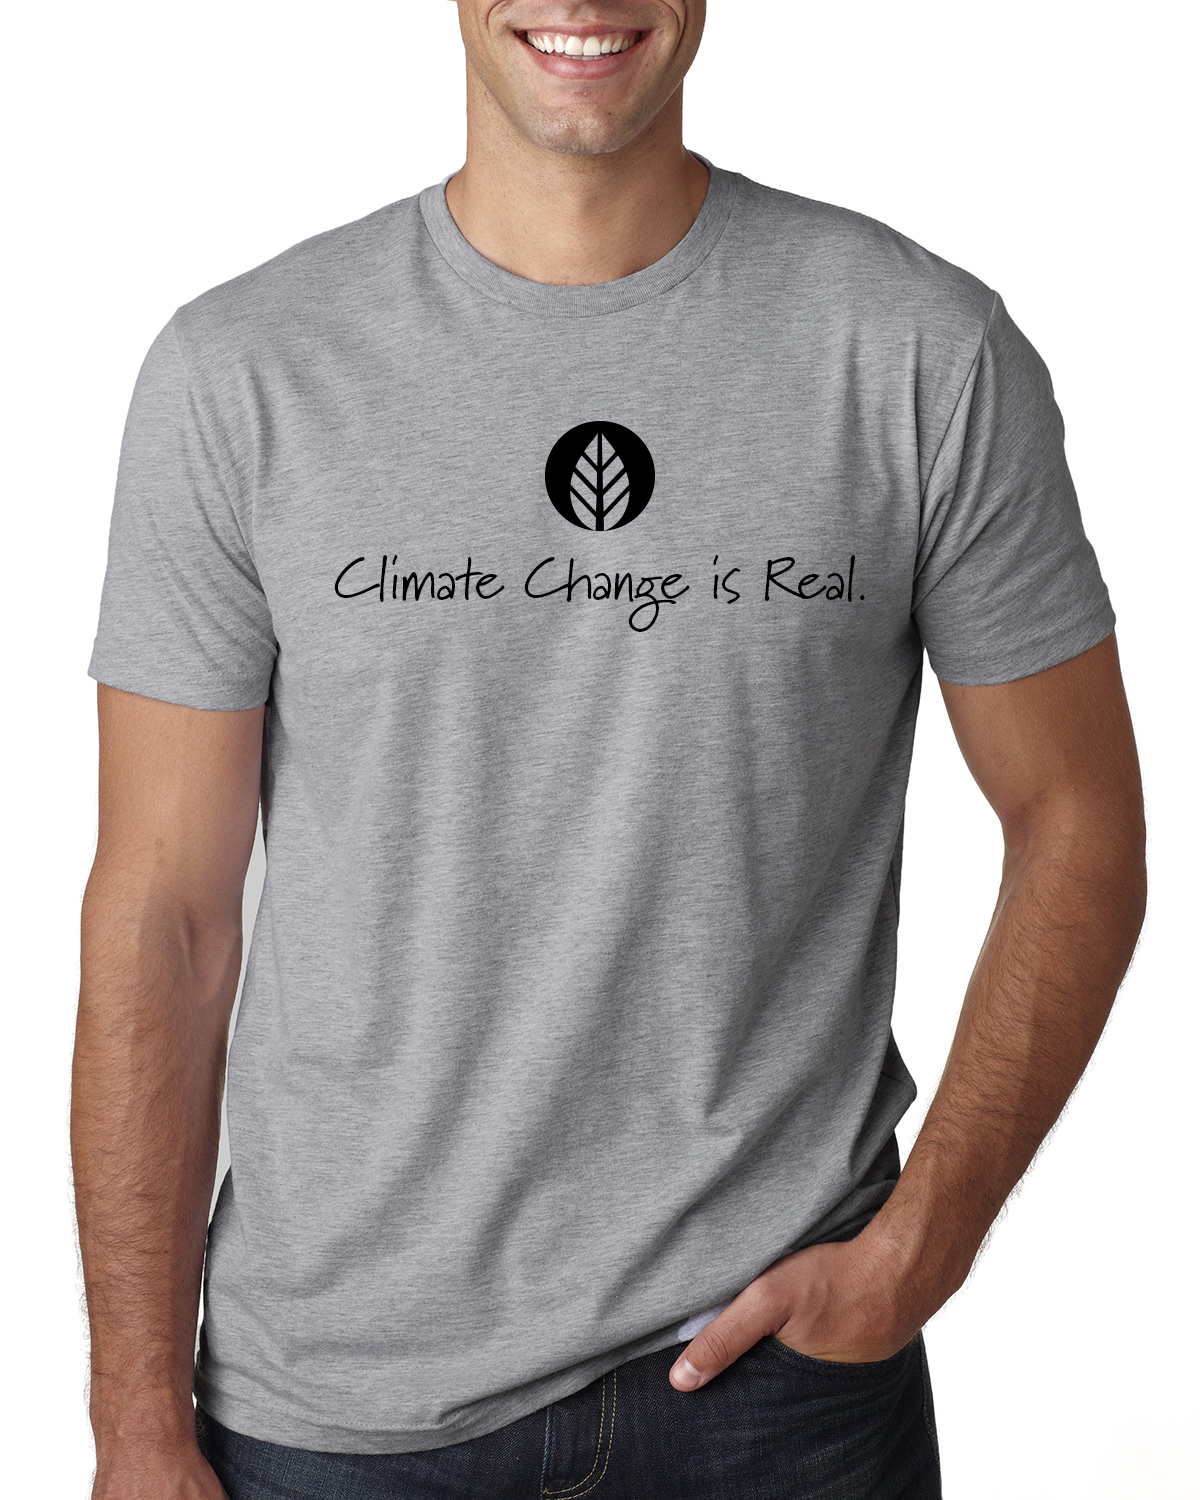 Men's short sleeve Climate Change is Real (heather gray)